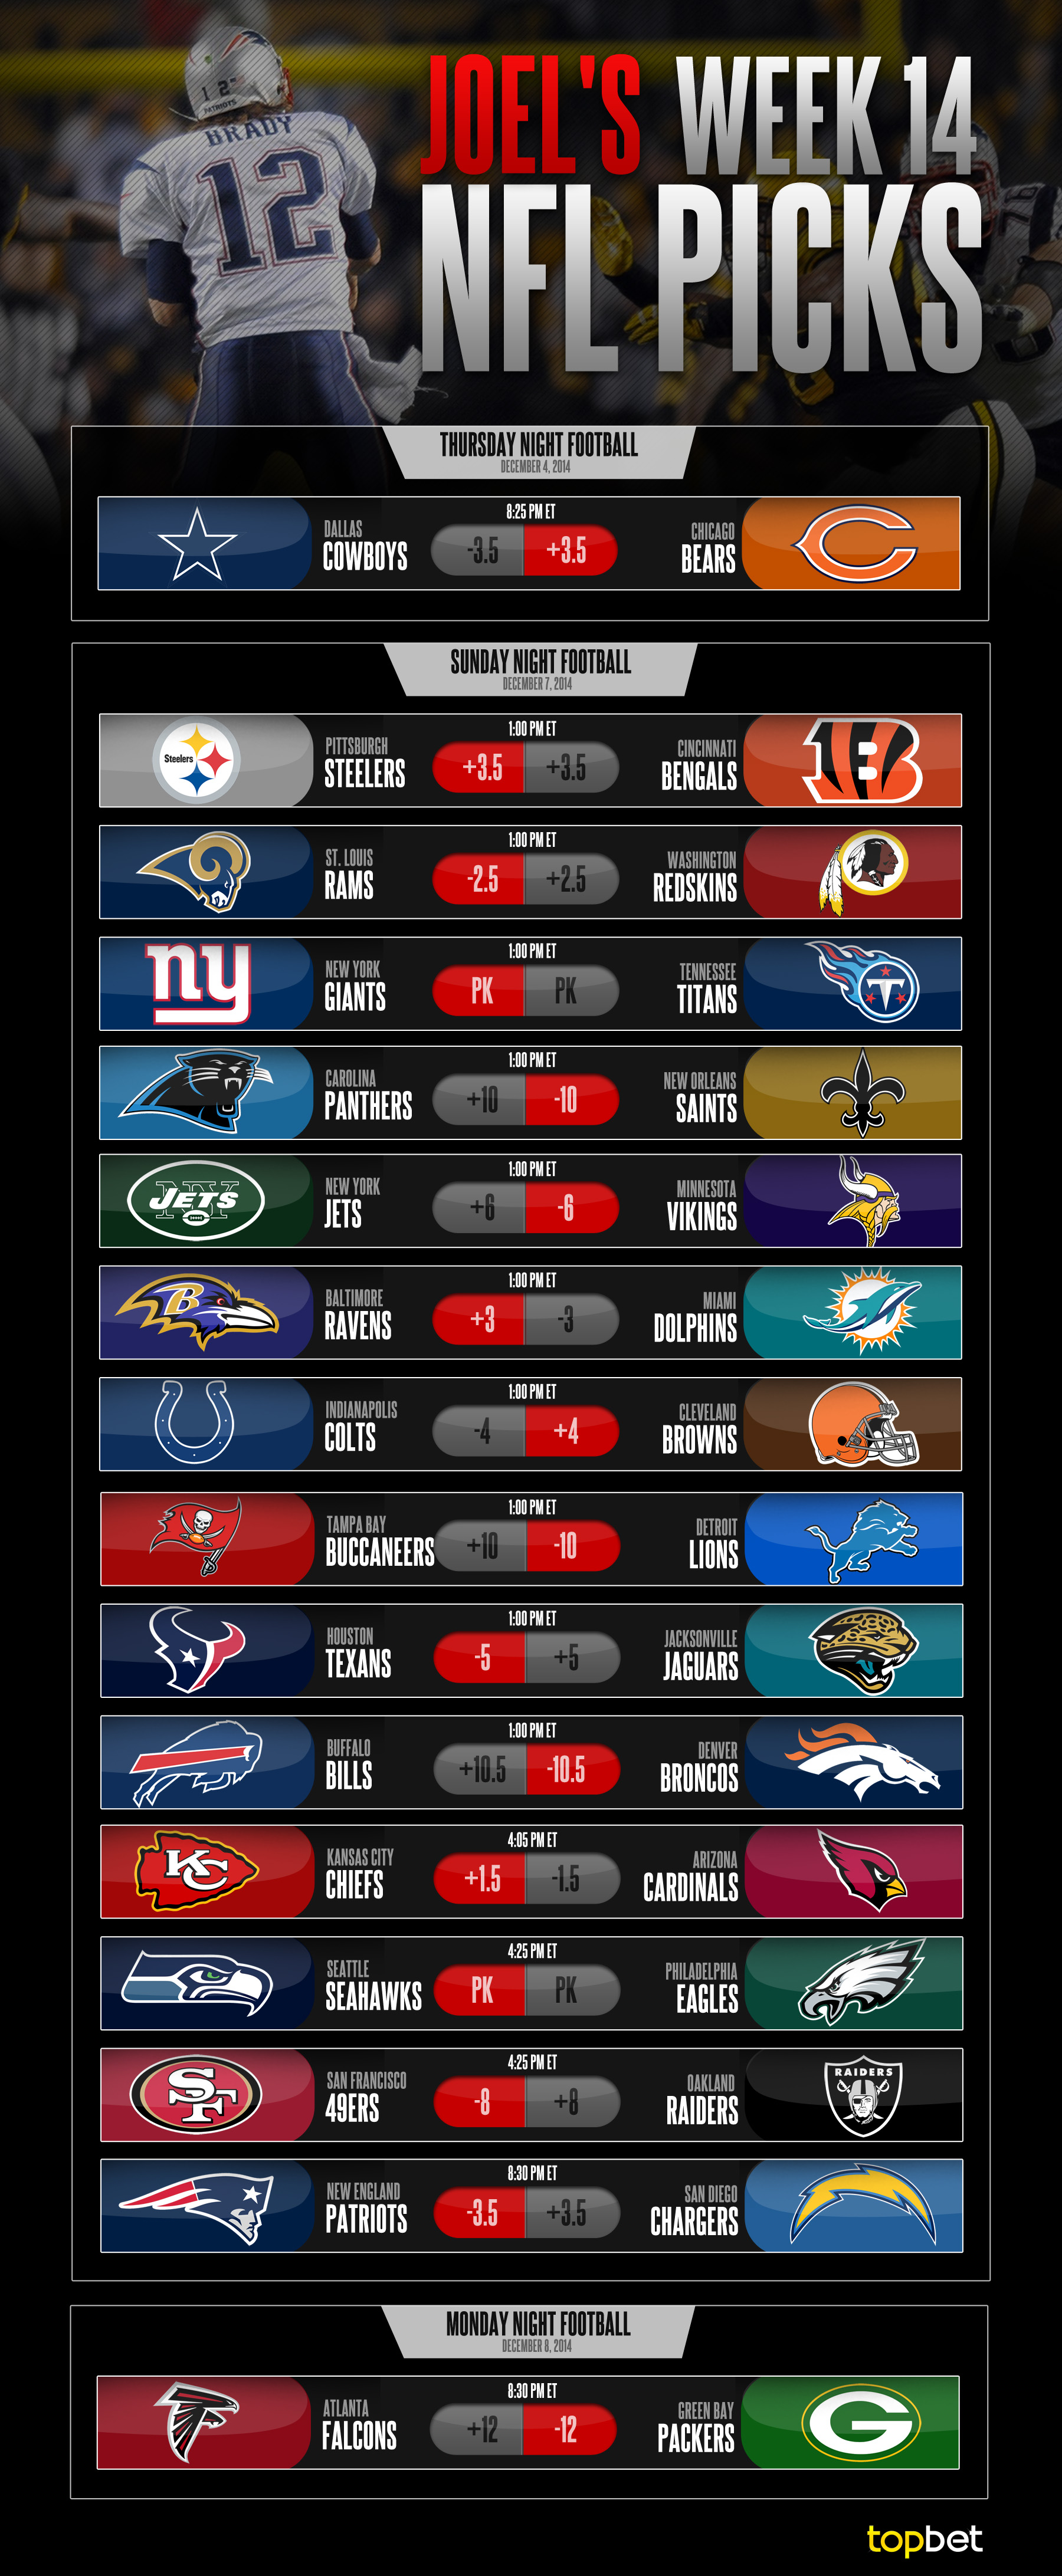 2014 NFL Week 14 Picks and Predictions